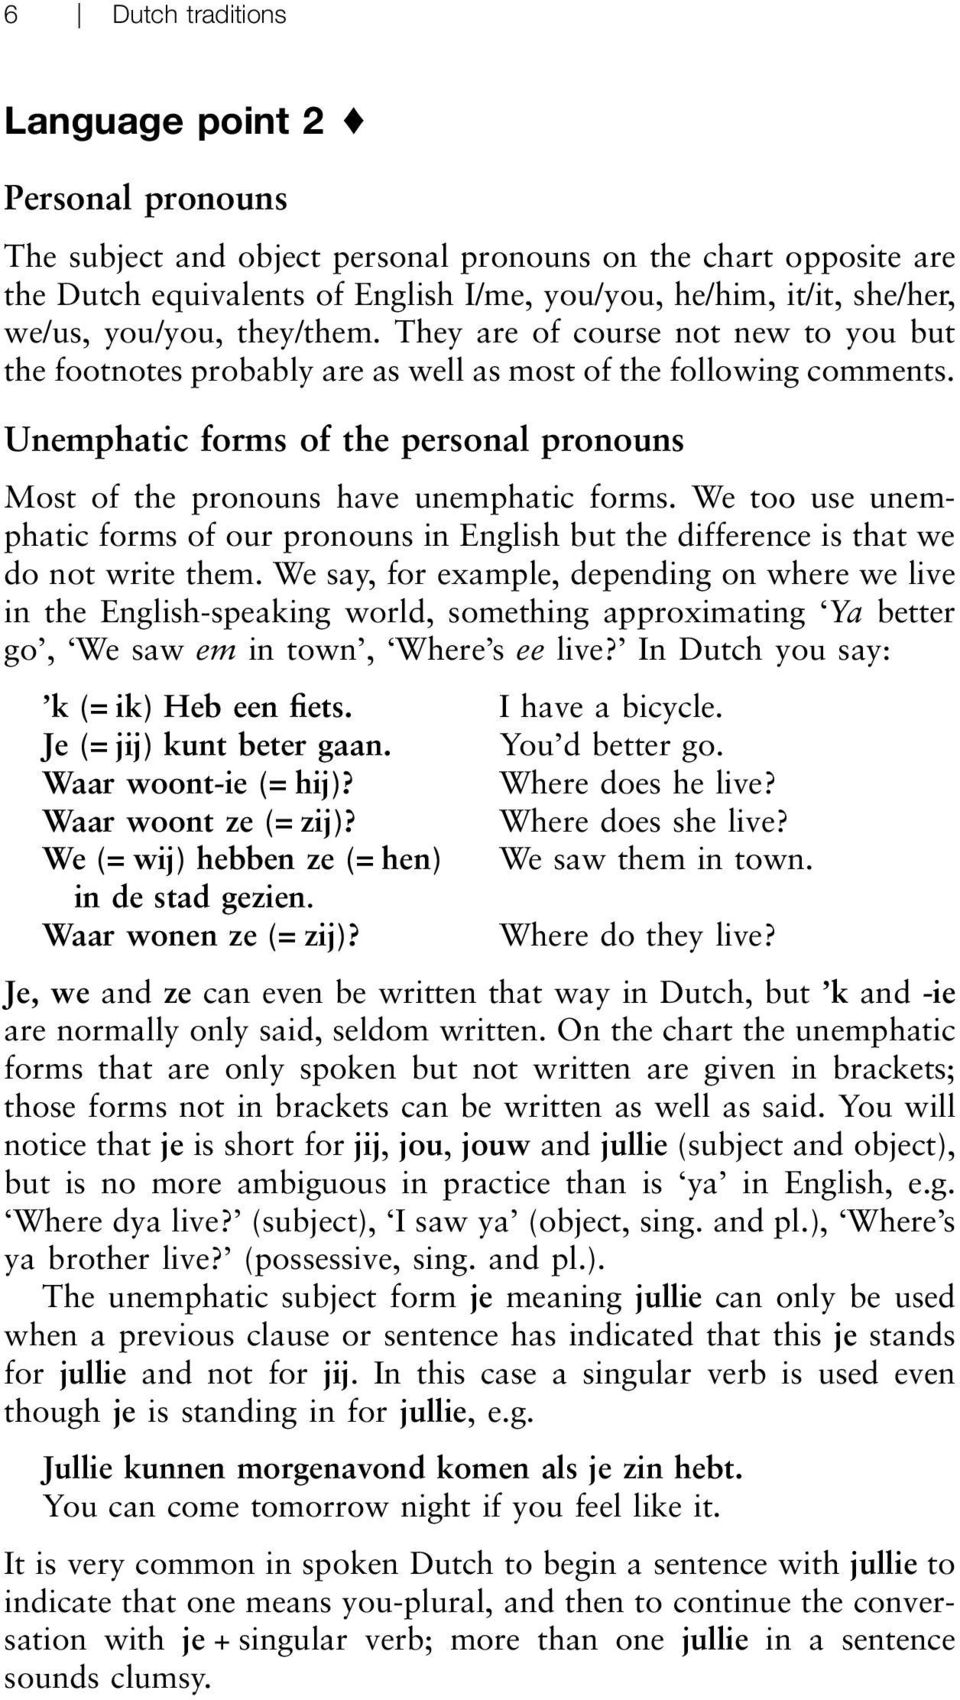 Unemphatic forms of the personal pronouns Most of the pronouns have unemphatic forms. We too use unemphatic forms of our pronouns in English but the difference is that we do not write them.